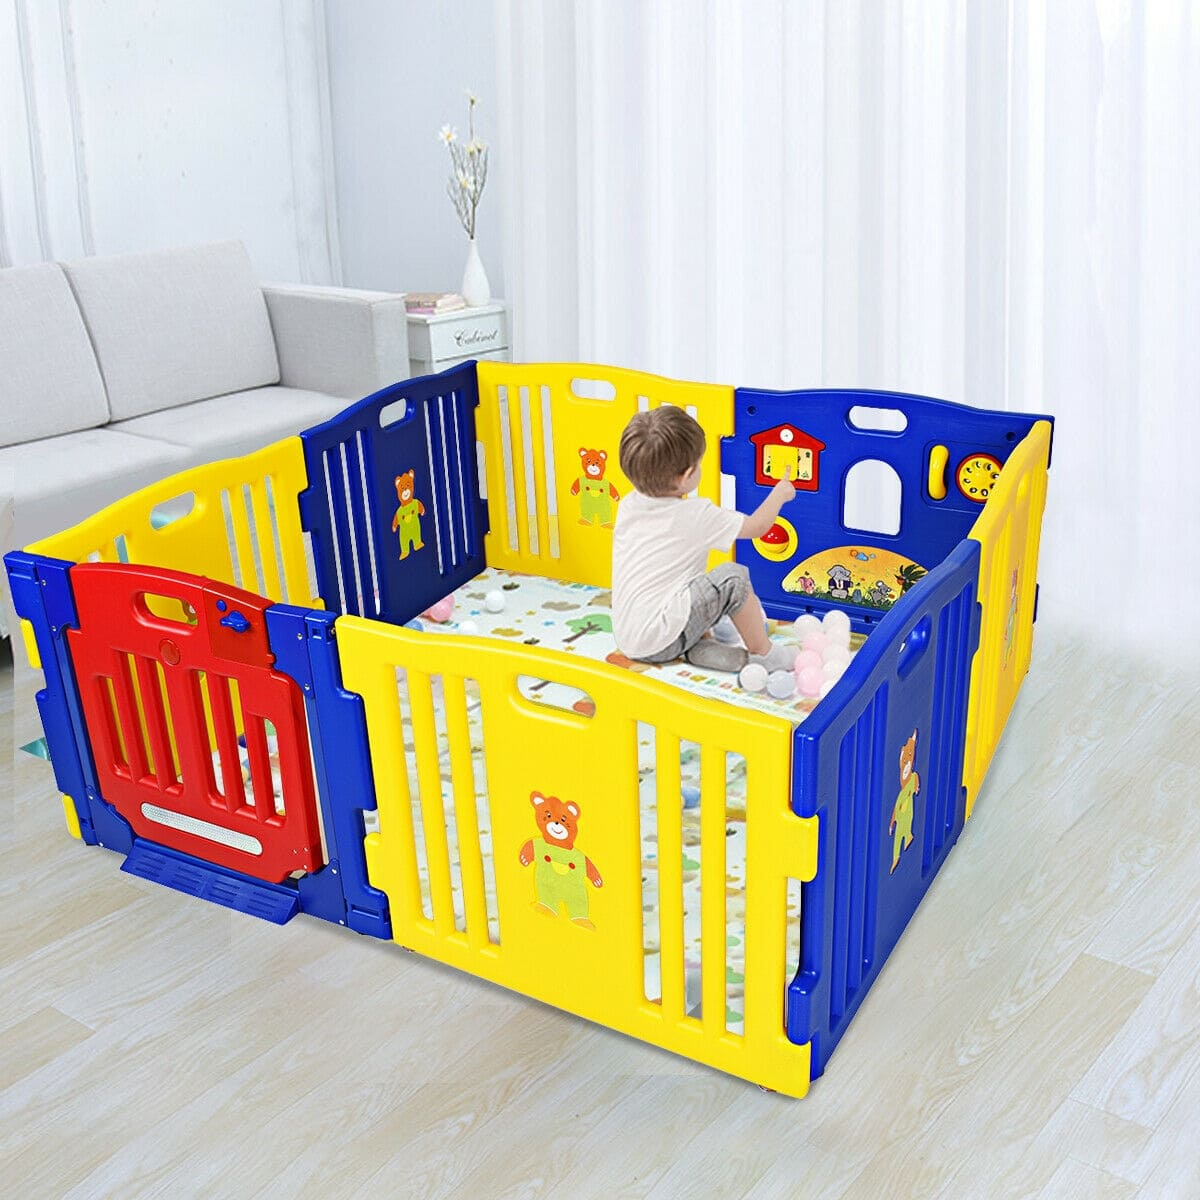 Baby Playpen Kids 8 Panel Safety Play Center Yard - FREE SHIPPING